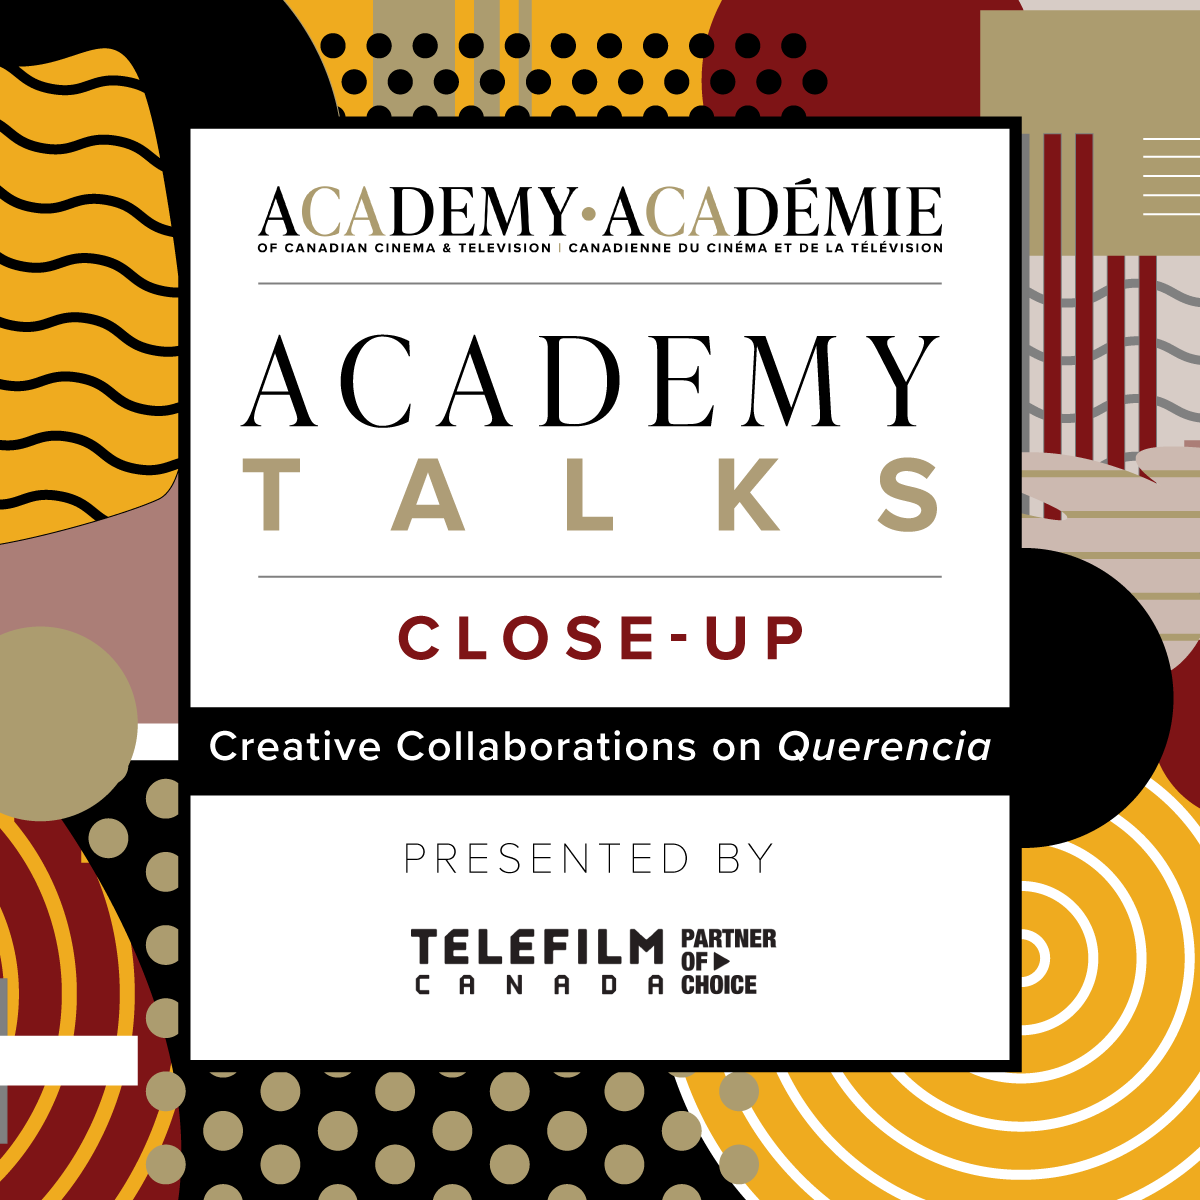 Academy Talks: Close-Up | Creative Collaborations on Querencia